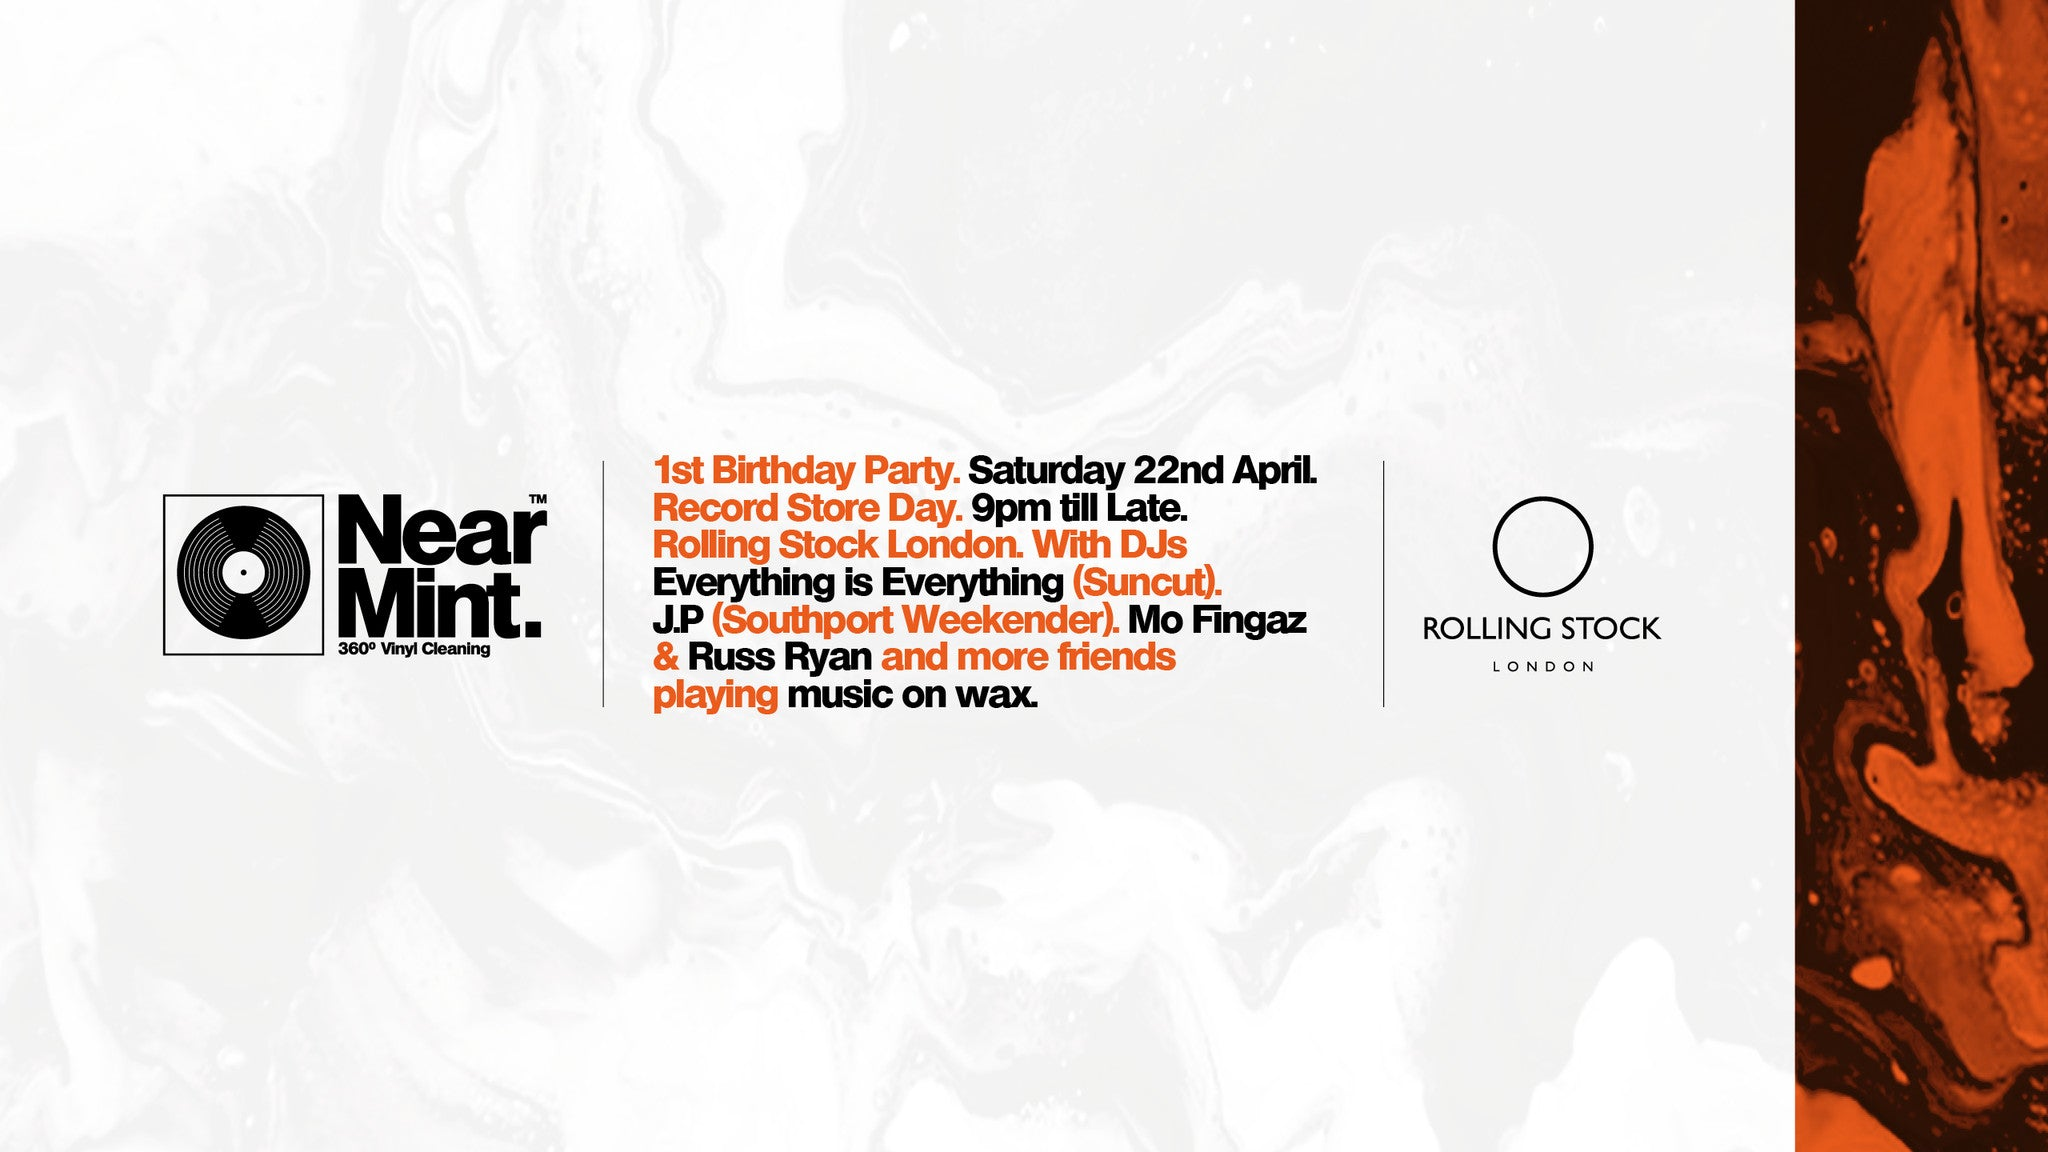 Near Mint 1st Birthday Party @ Rolling Stock, 48 Kingsland Rd. Shoreditch, E2